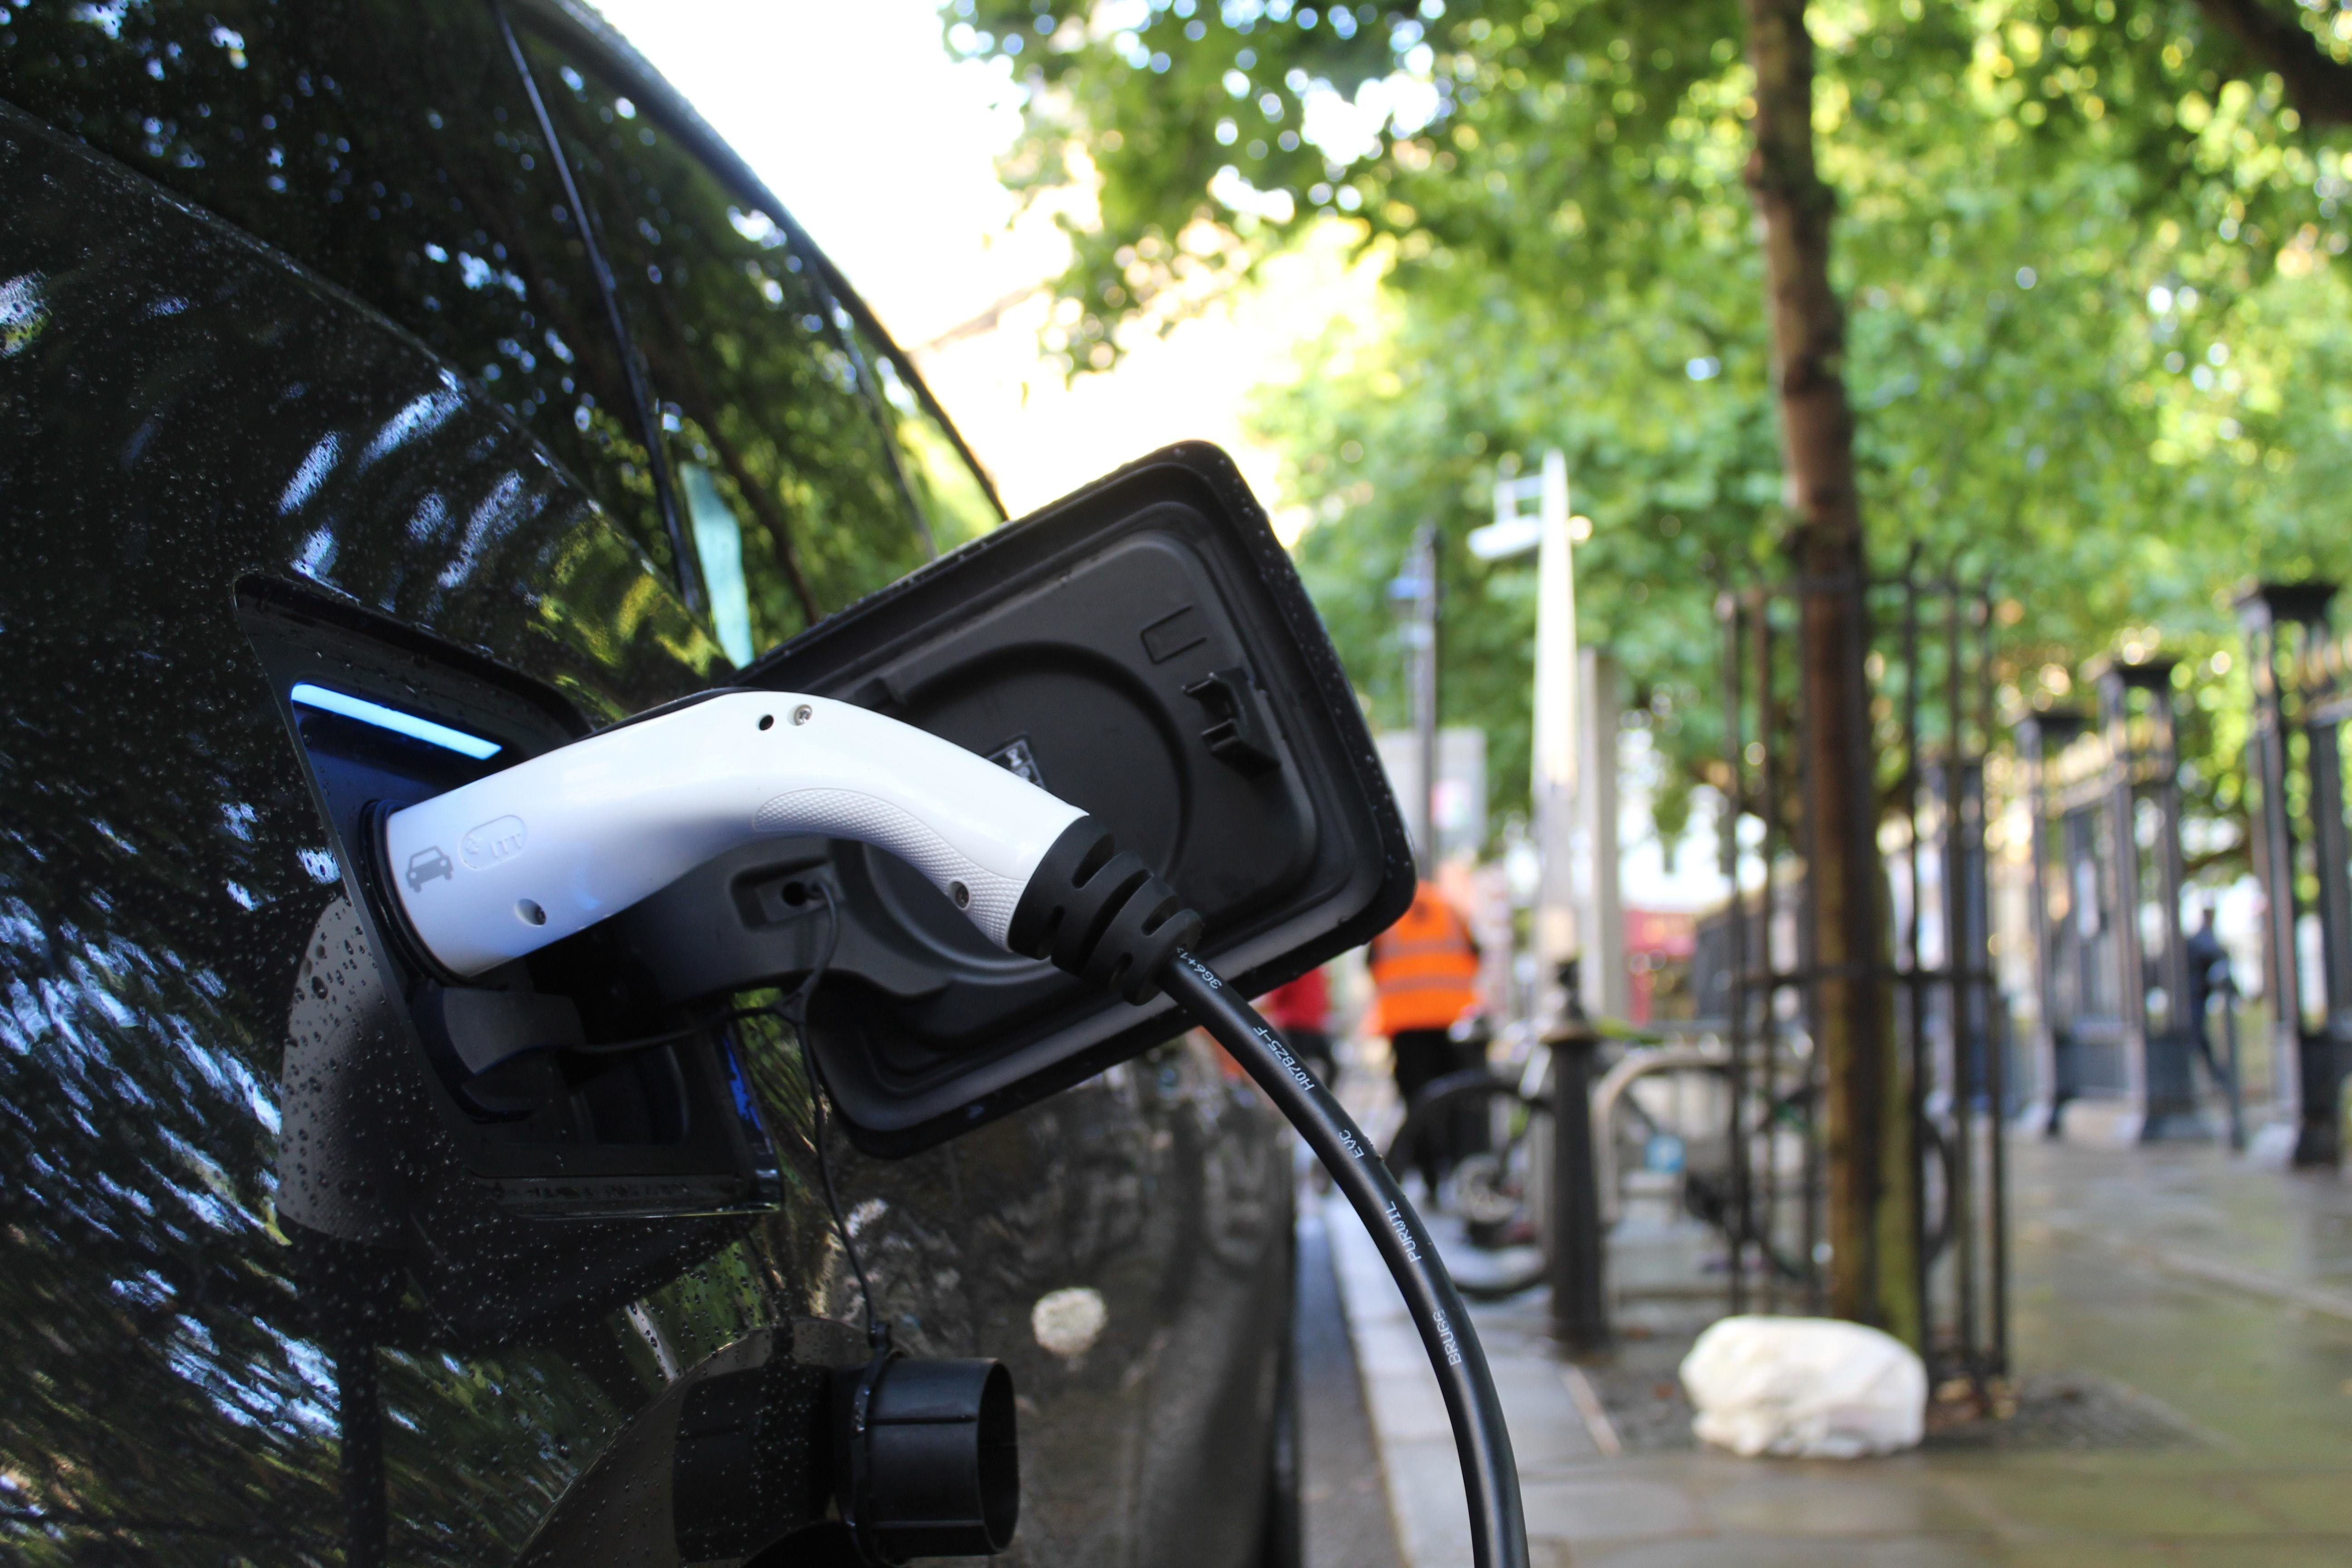 electric vehicles green environmental concern car sales mobility COVID-19 coronavirus pandemic travel EV sustainability electricity consumer